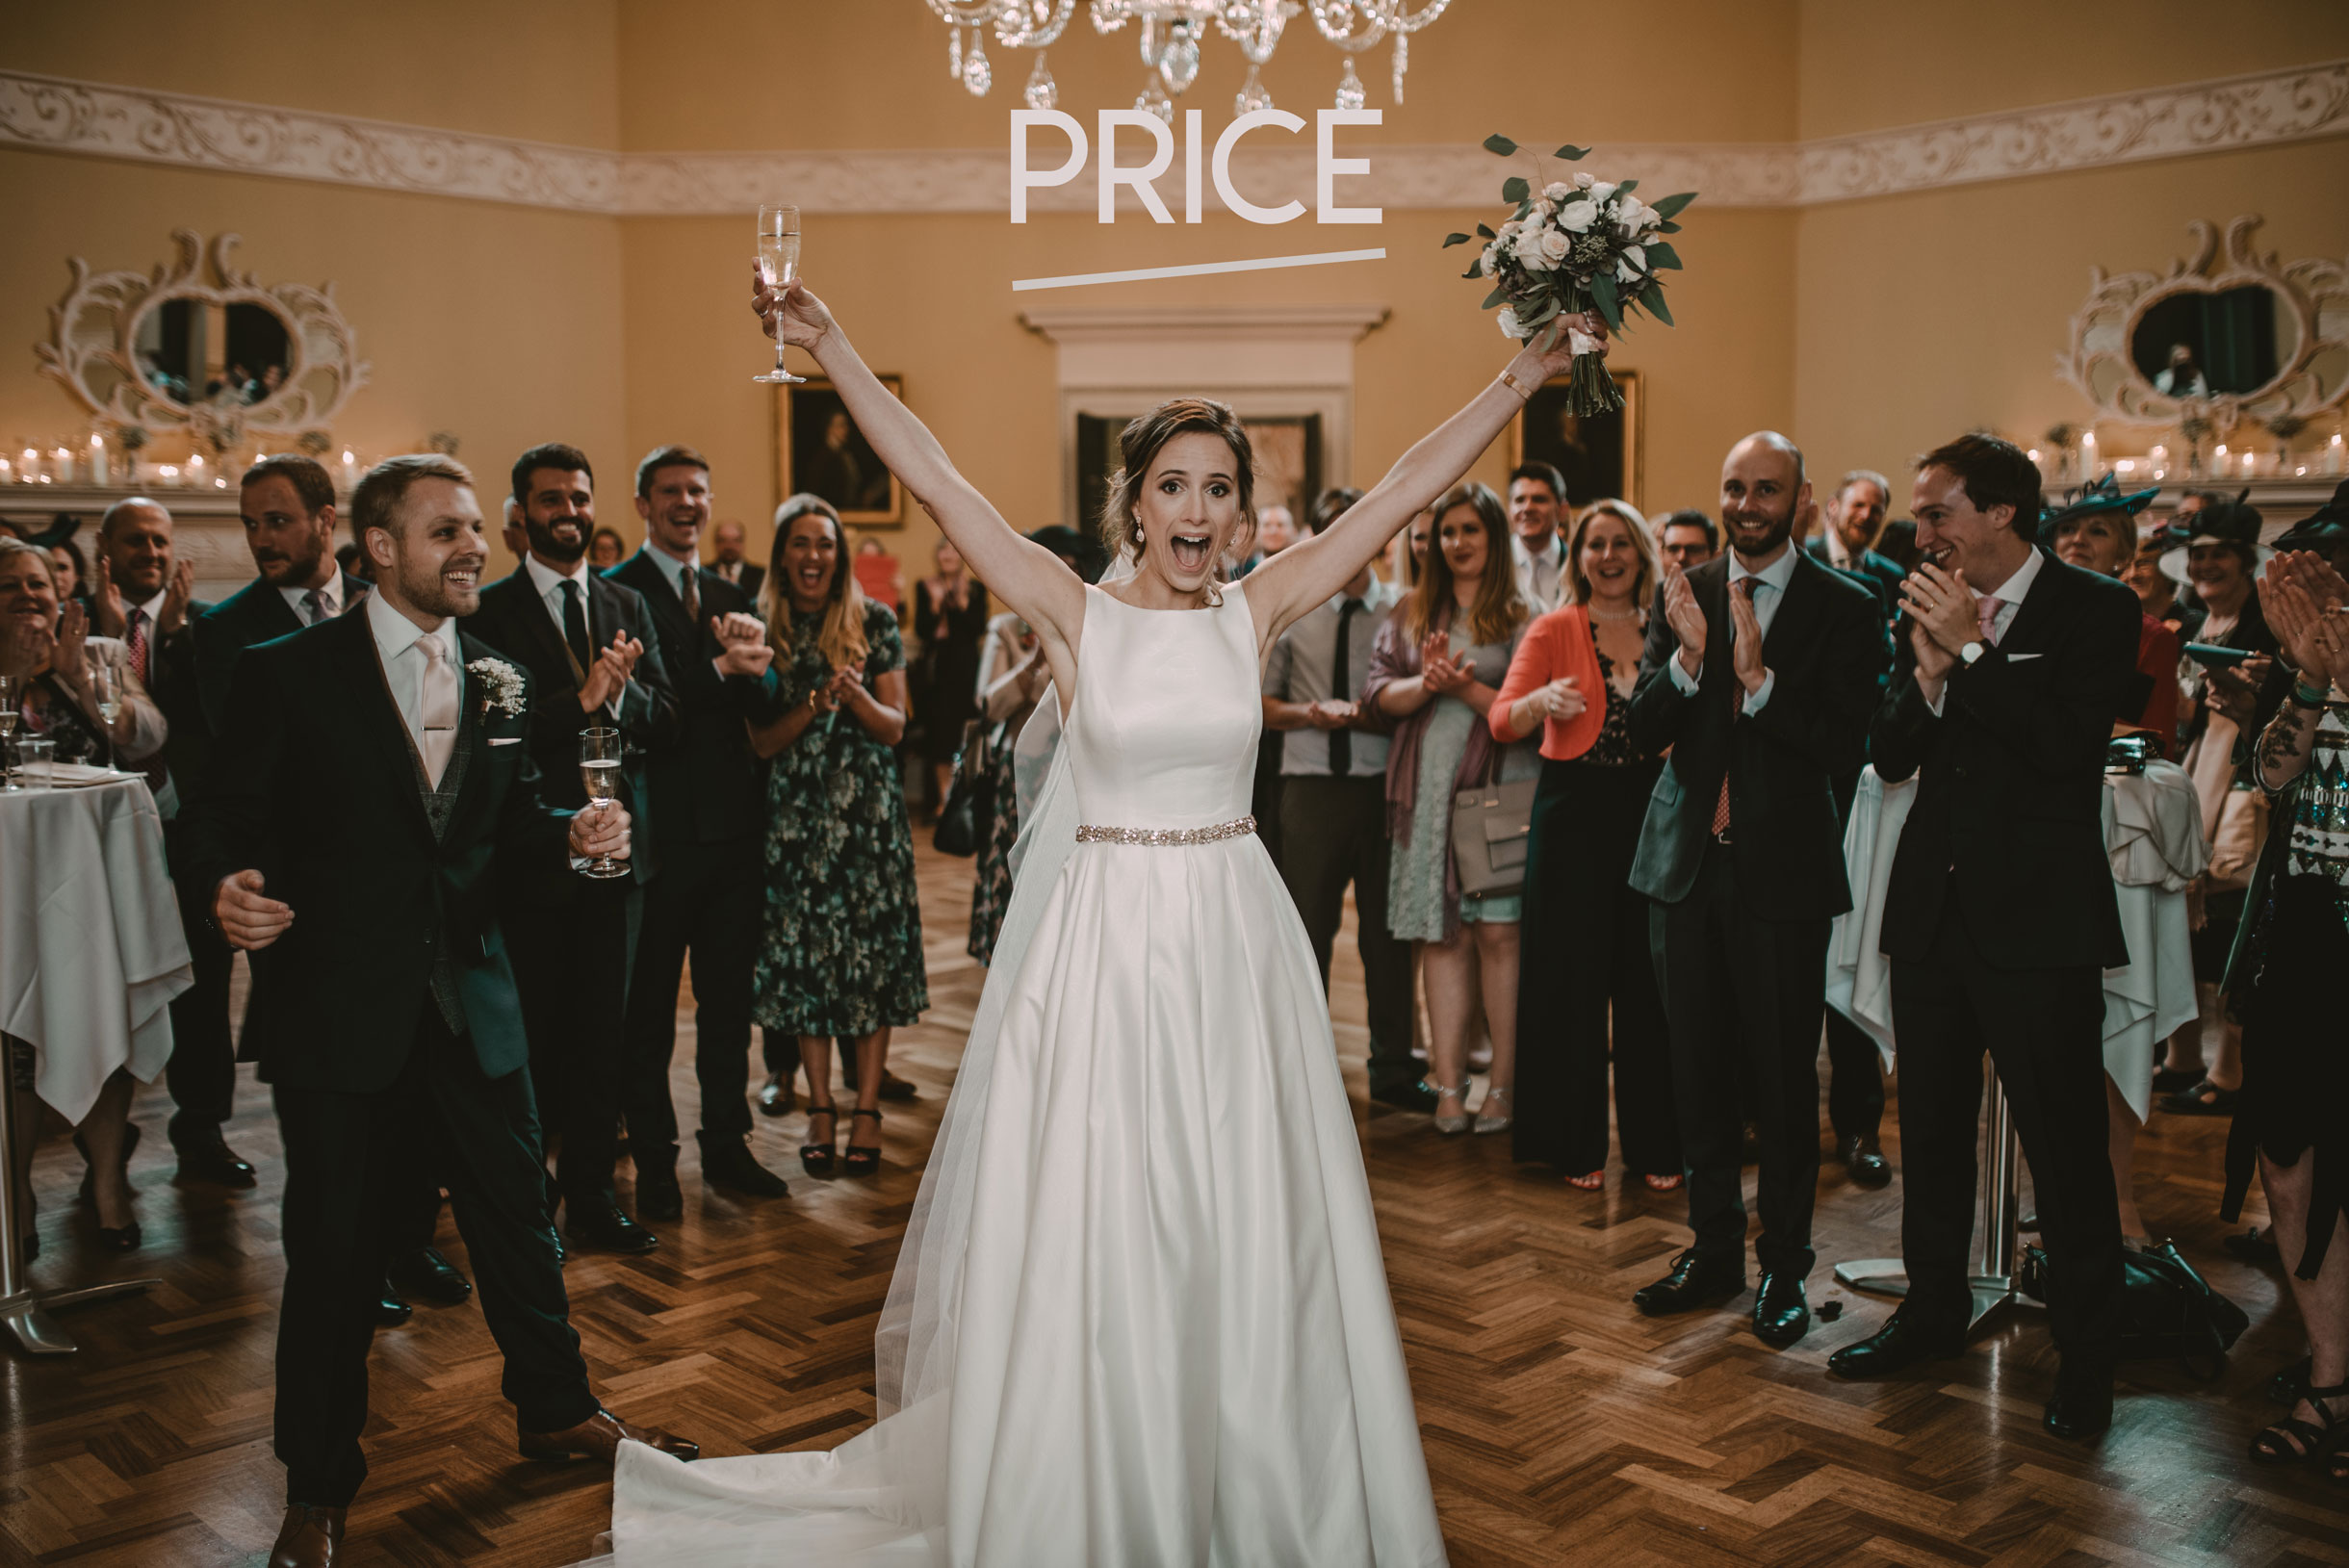 Average Wedding Photographer Cost Uk: Andrew Brannan Photography Pricing Page